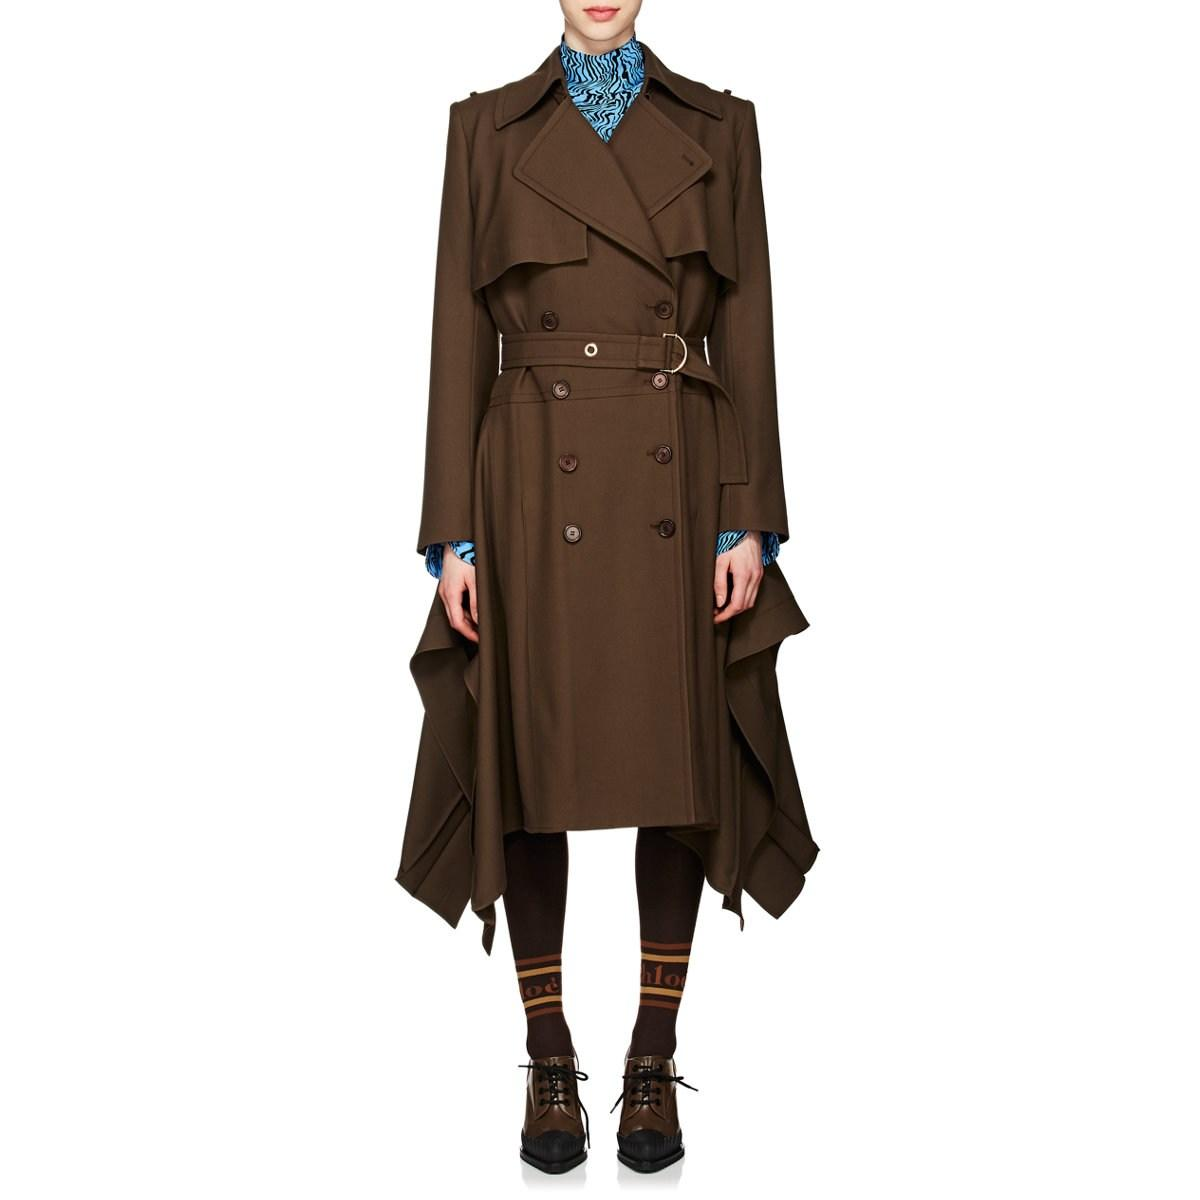 7623d3ffc3 Lyst - Chloé Wool Asymmetric Trench Coat in Brown - Save 70%